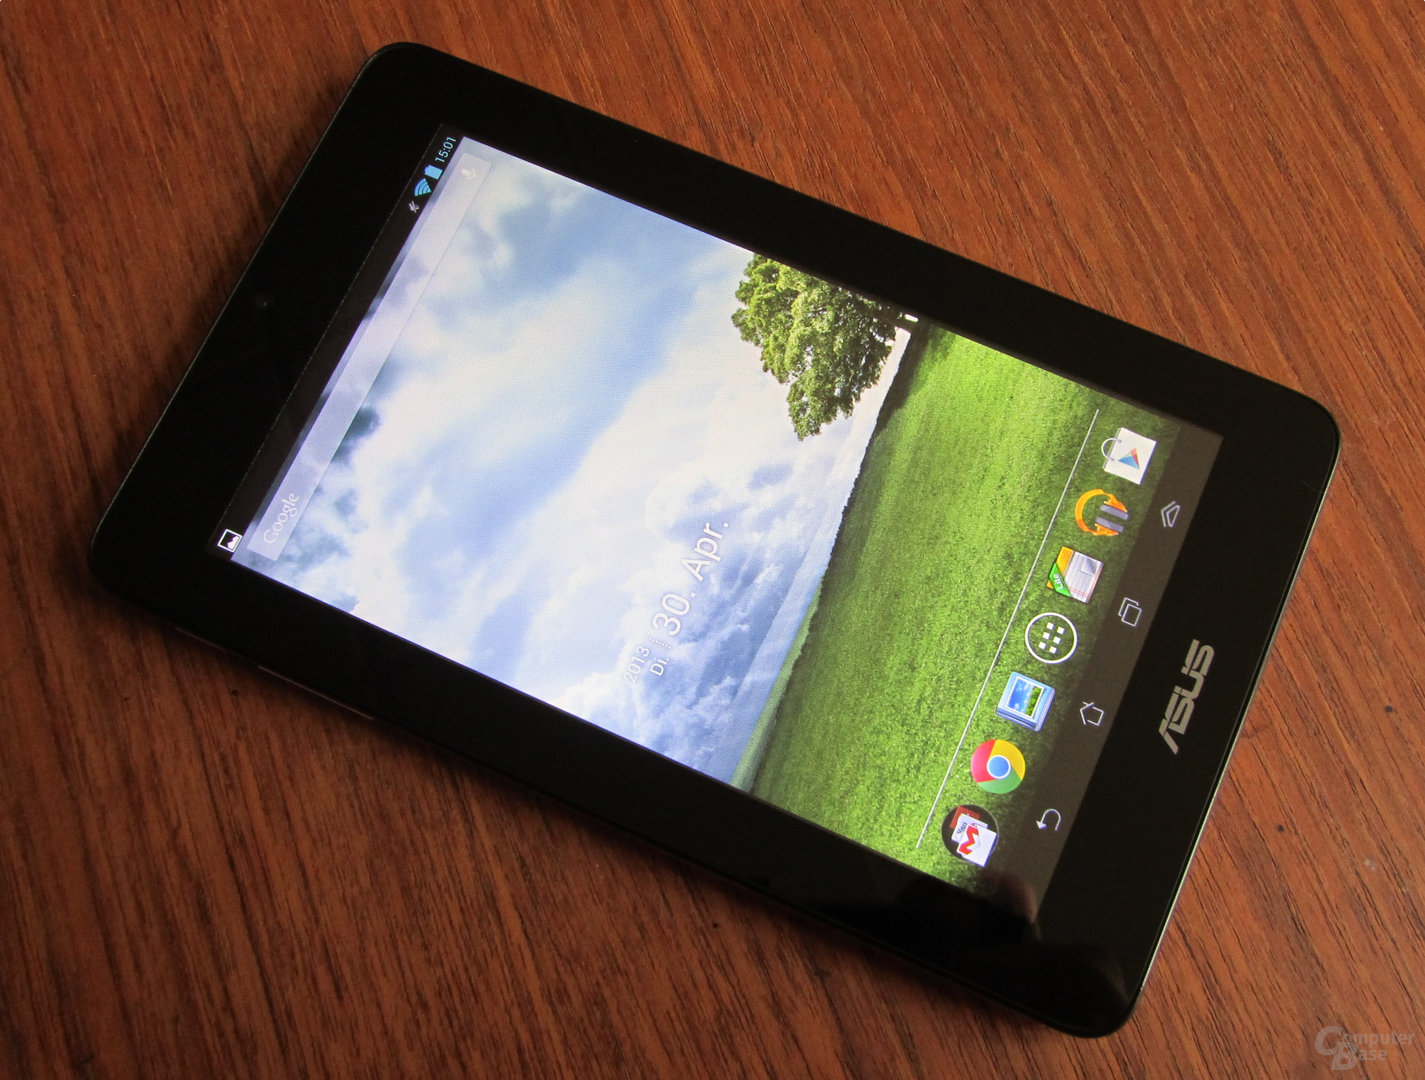 Preiswerte Tablets Bilder Asus Memo Pad And Memo Pad Smart Im Test